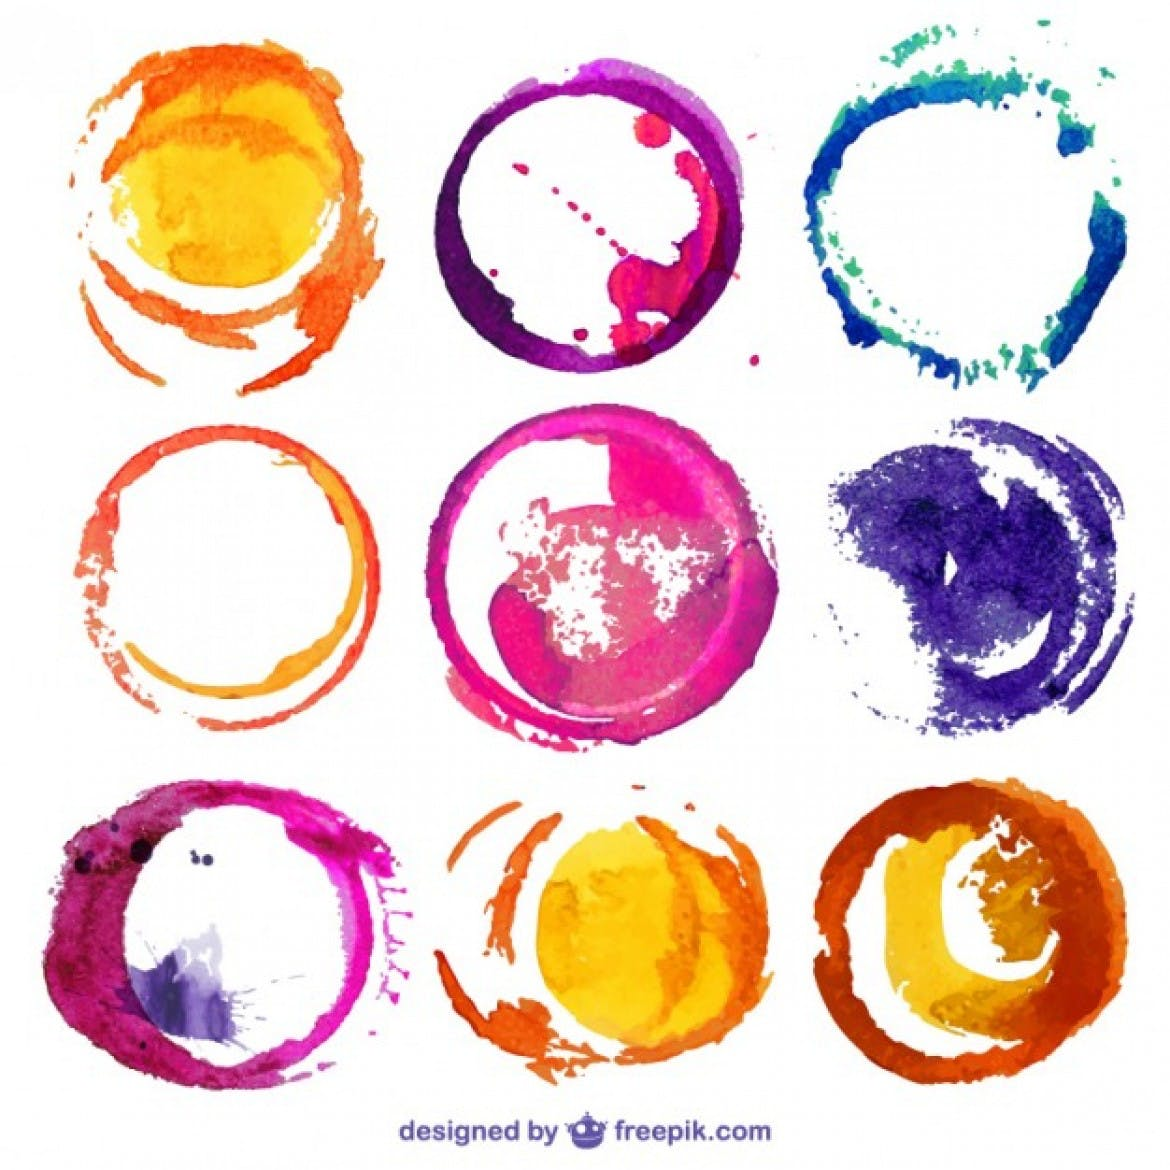 wpid-round-watercolor-stains_23-2147505250-1170x1170